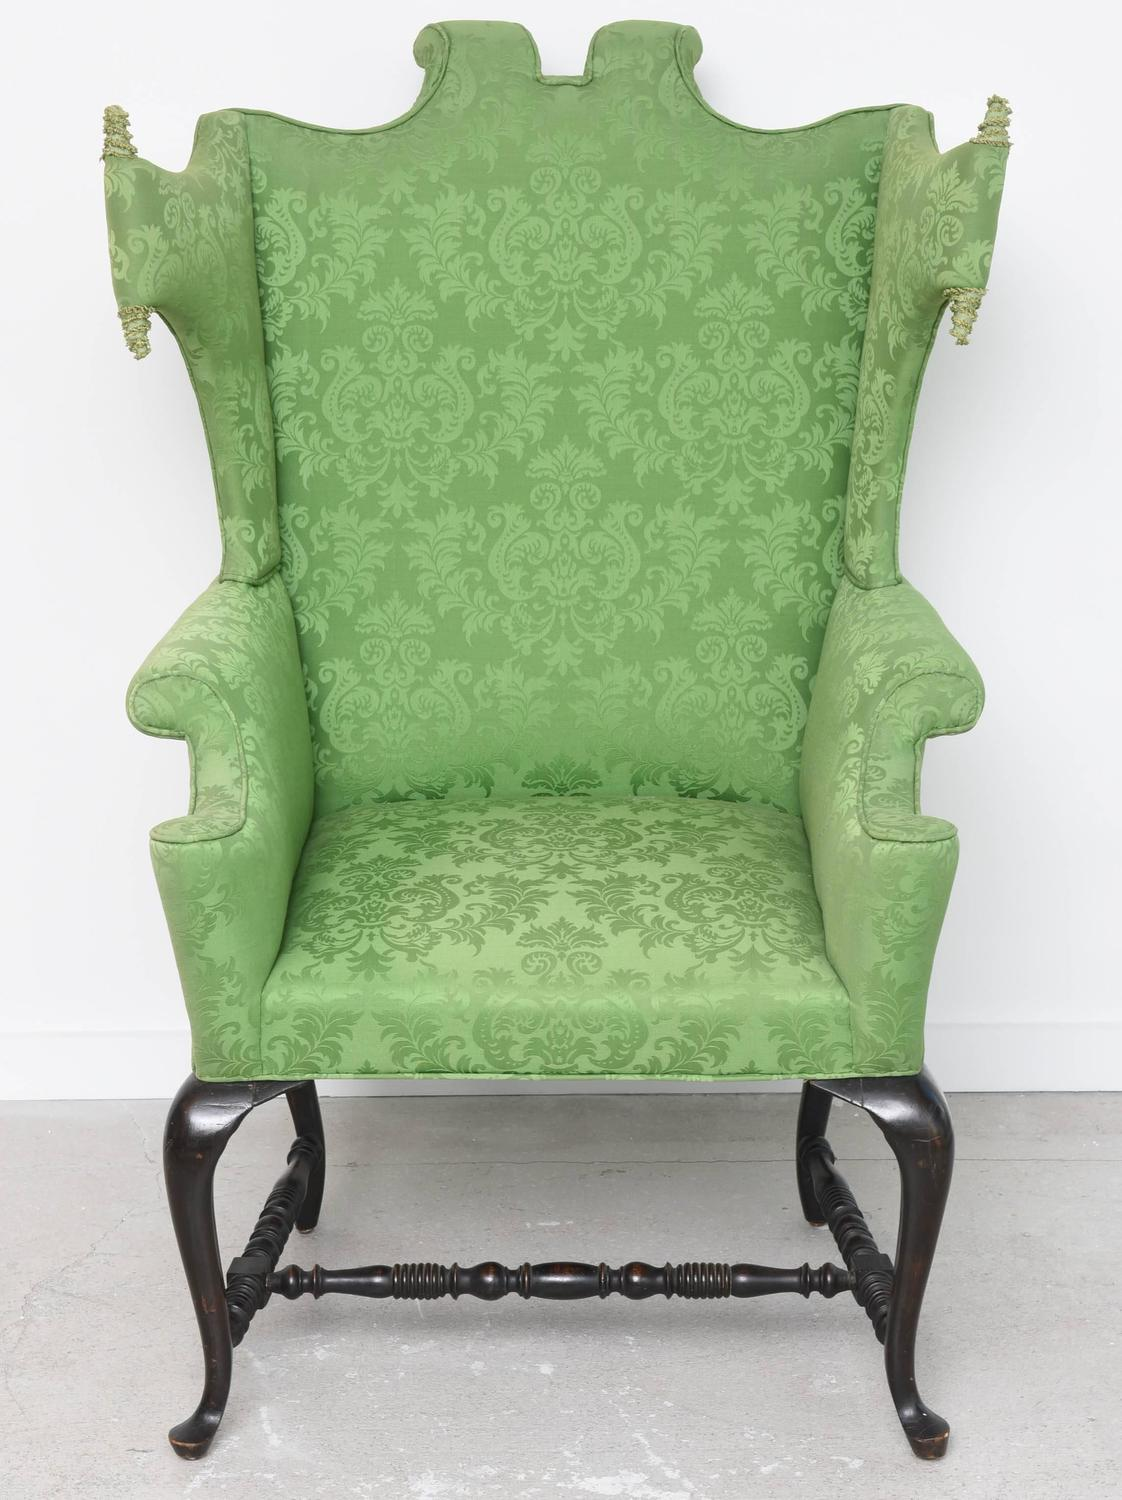 queen anne style chair fabric computer whimsical at 1stdibs